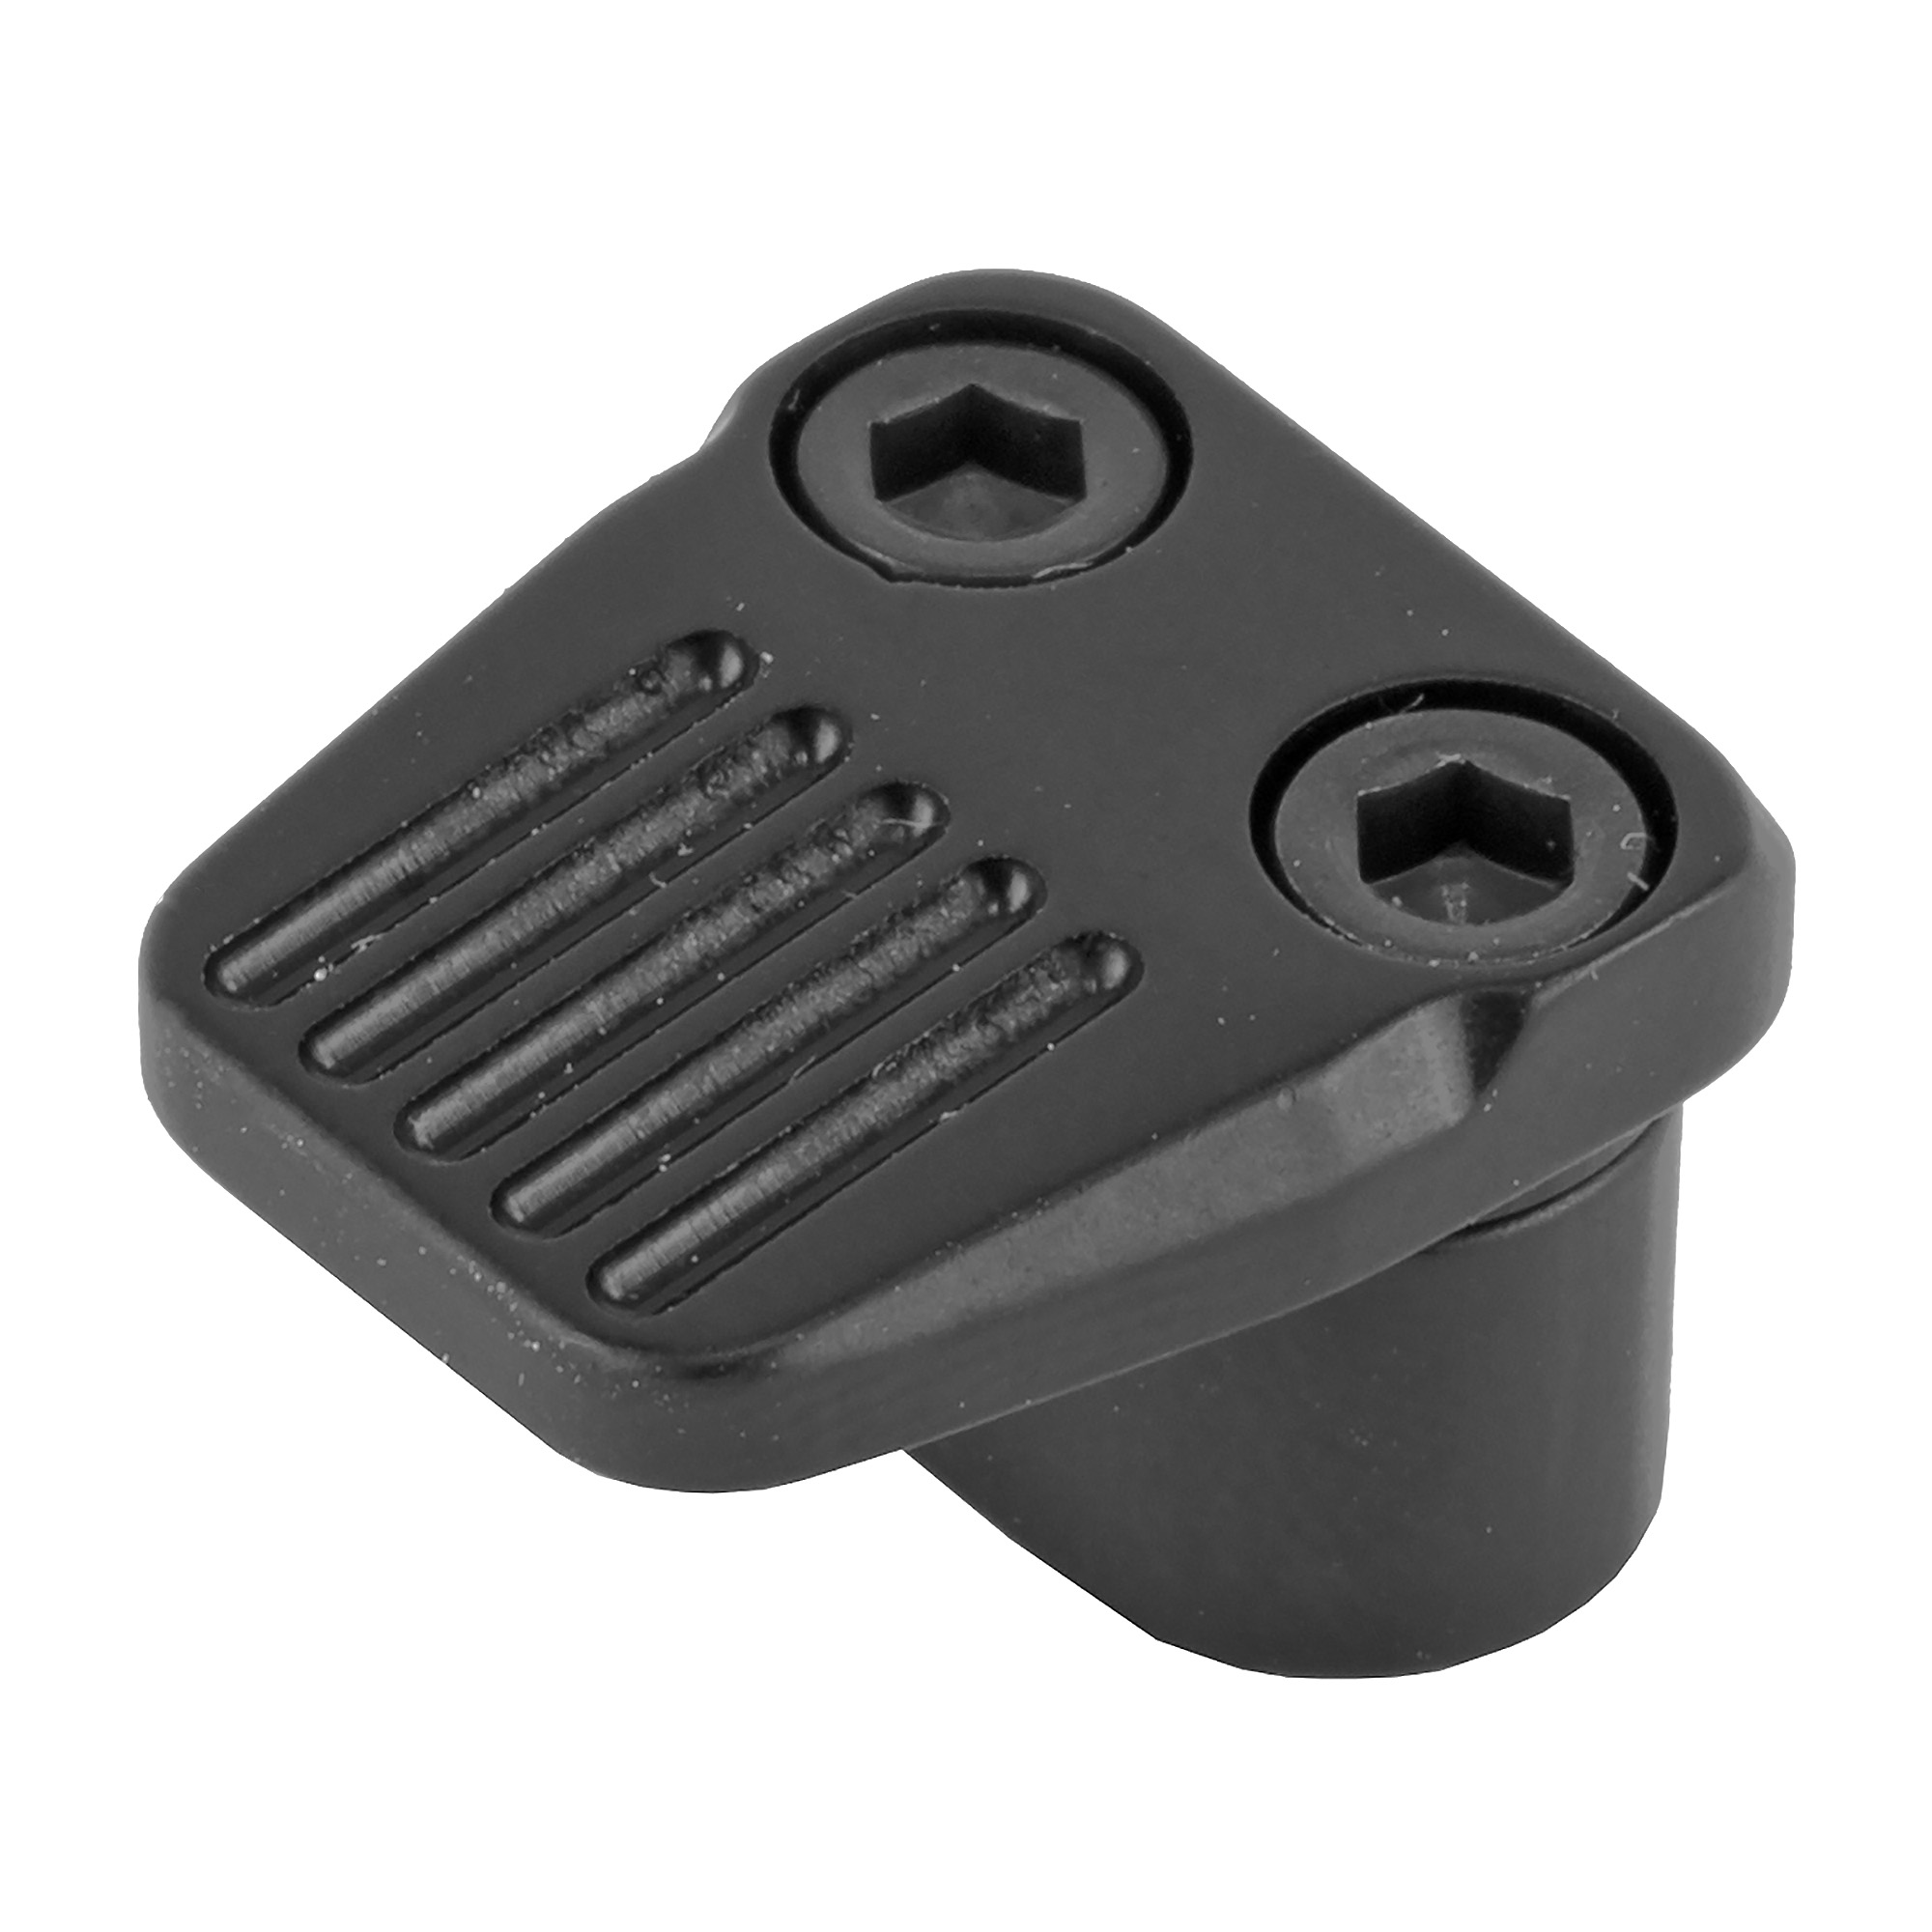 The Enhanced Mag Release provides an enlarged contact surface on the AR15 for quick magazine changes and is constructed from aviation grade aluminum.